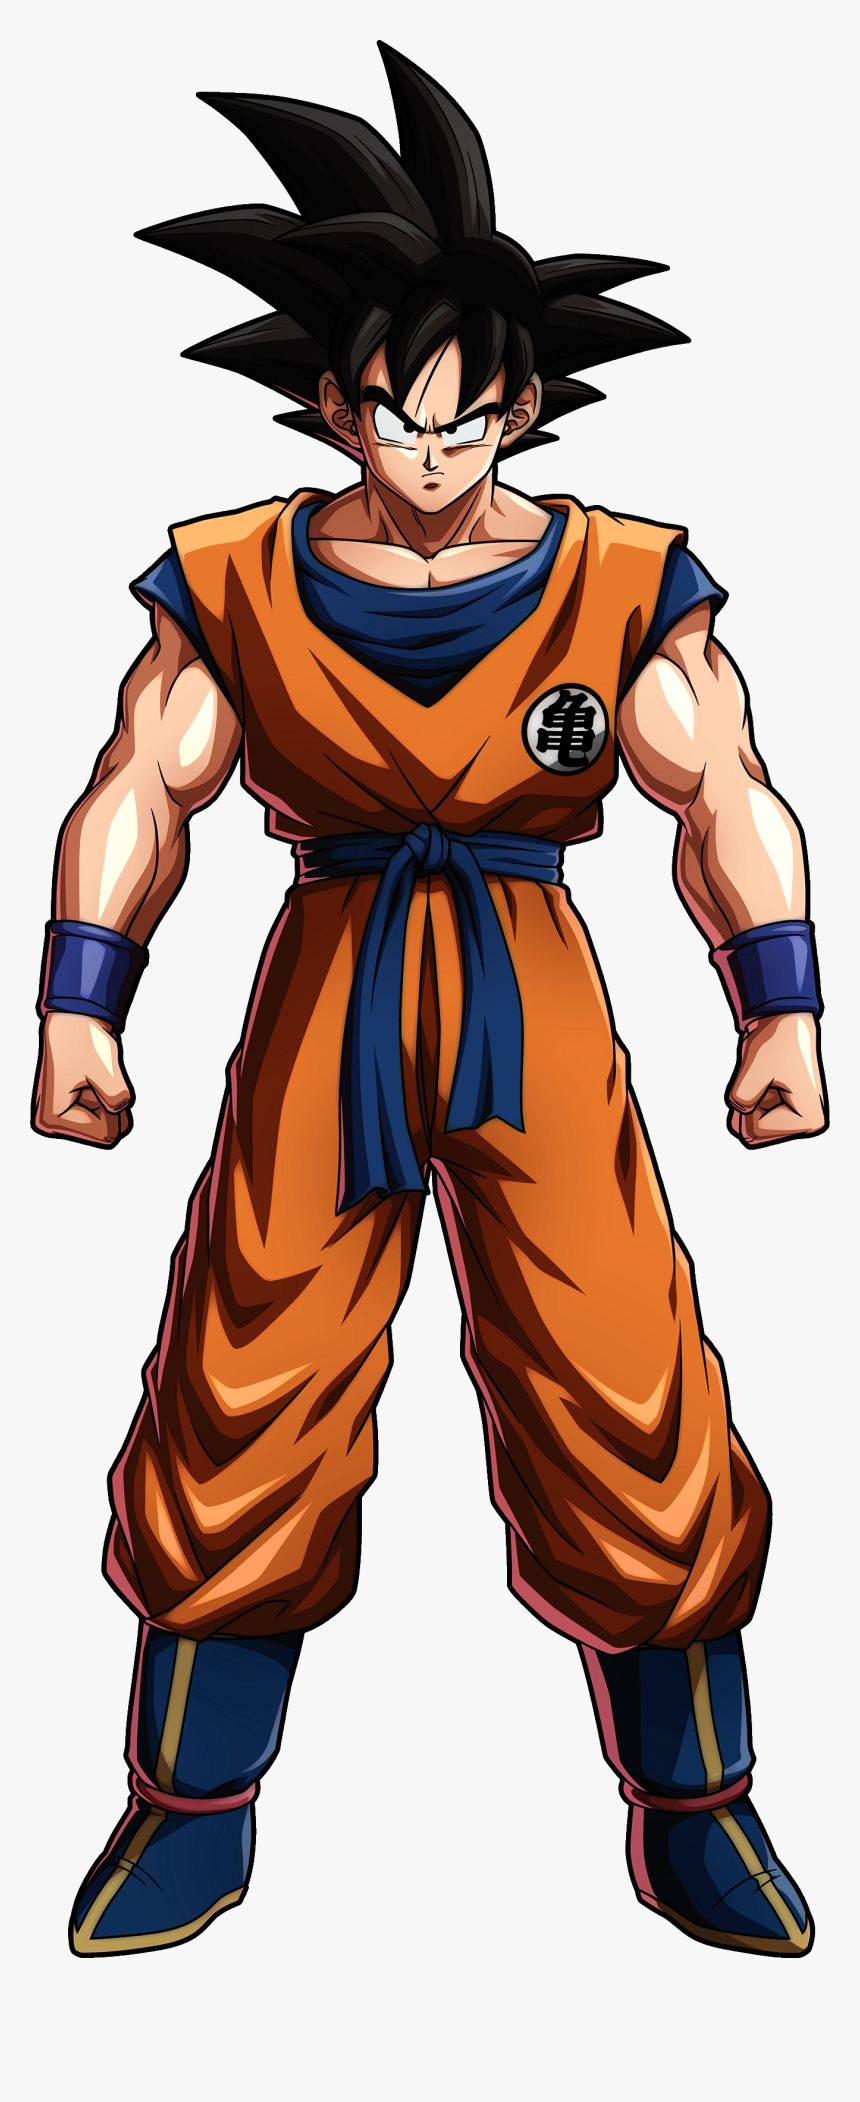 Normal - Dragon Ball Fighterz Base Goku, HD Png Download, Free Download